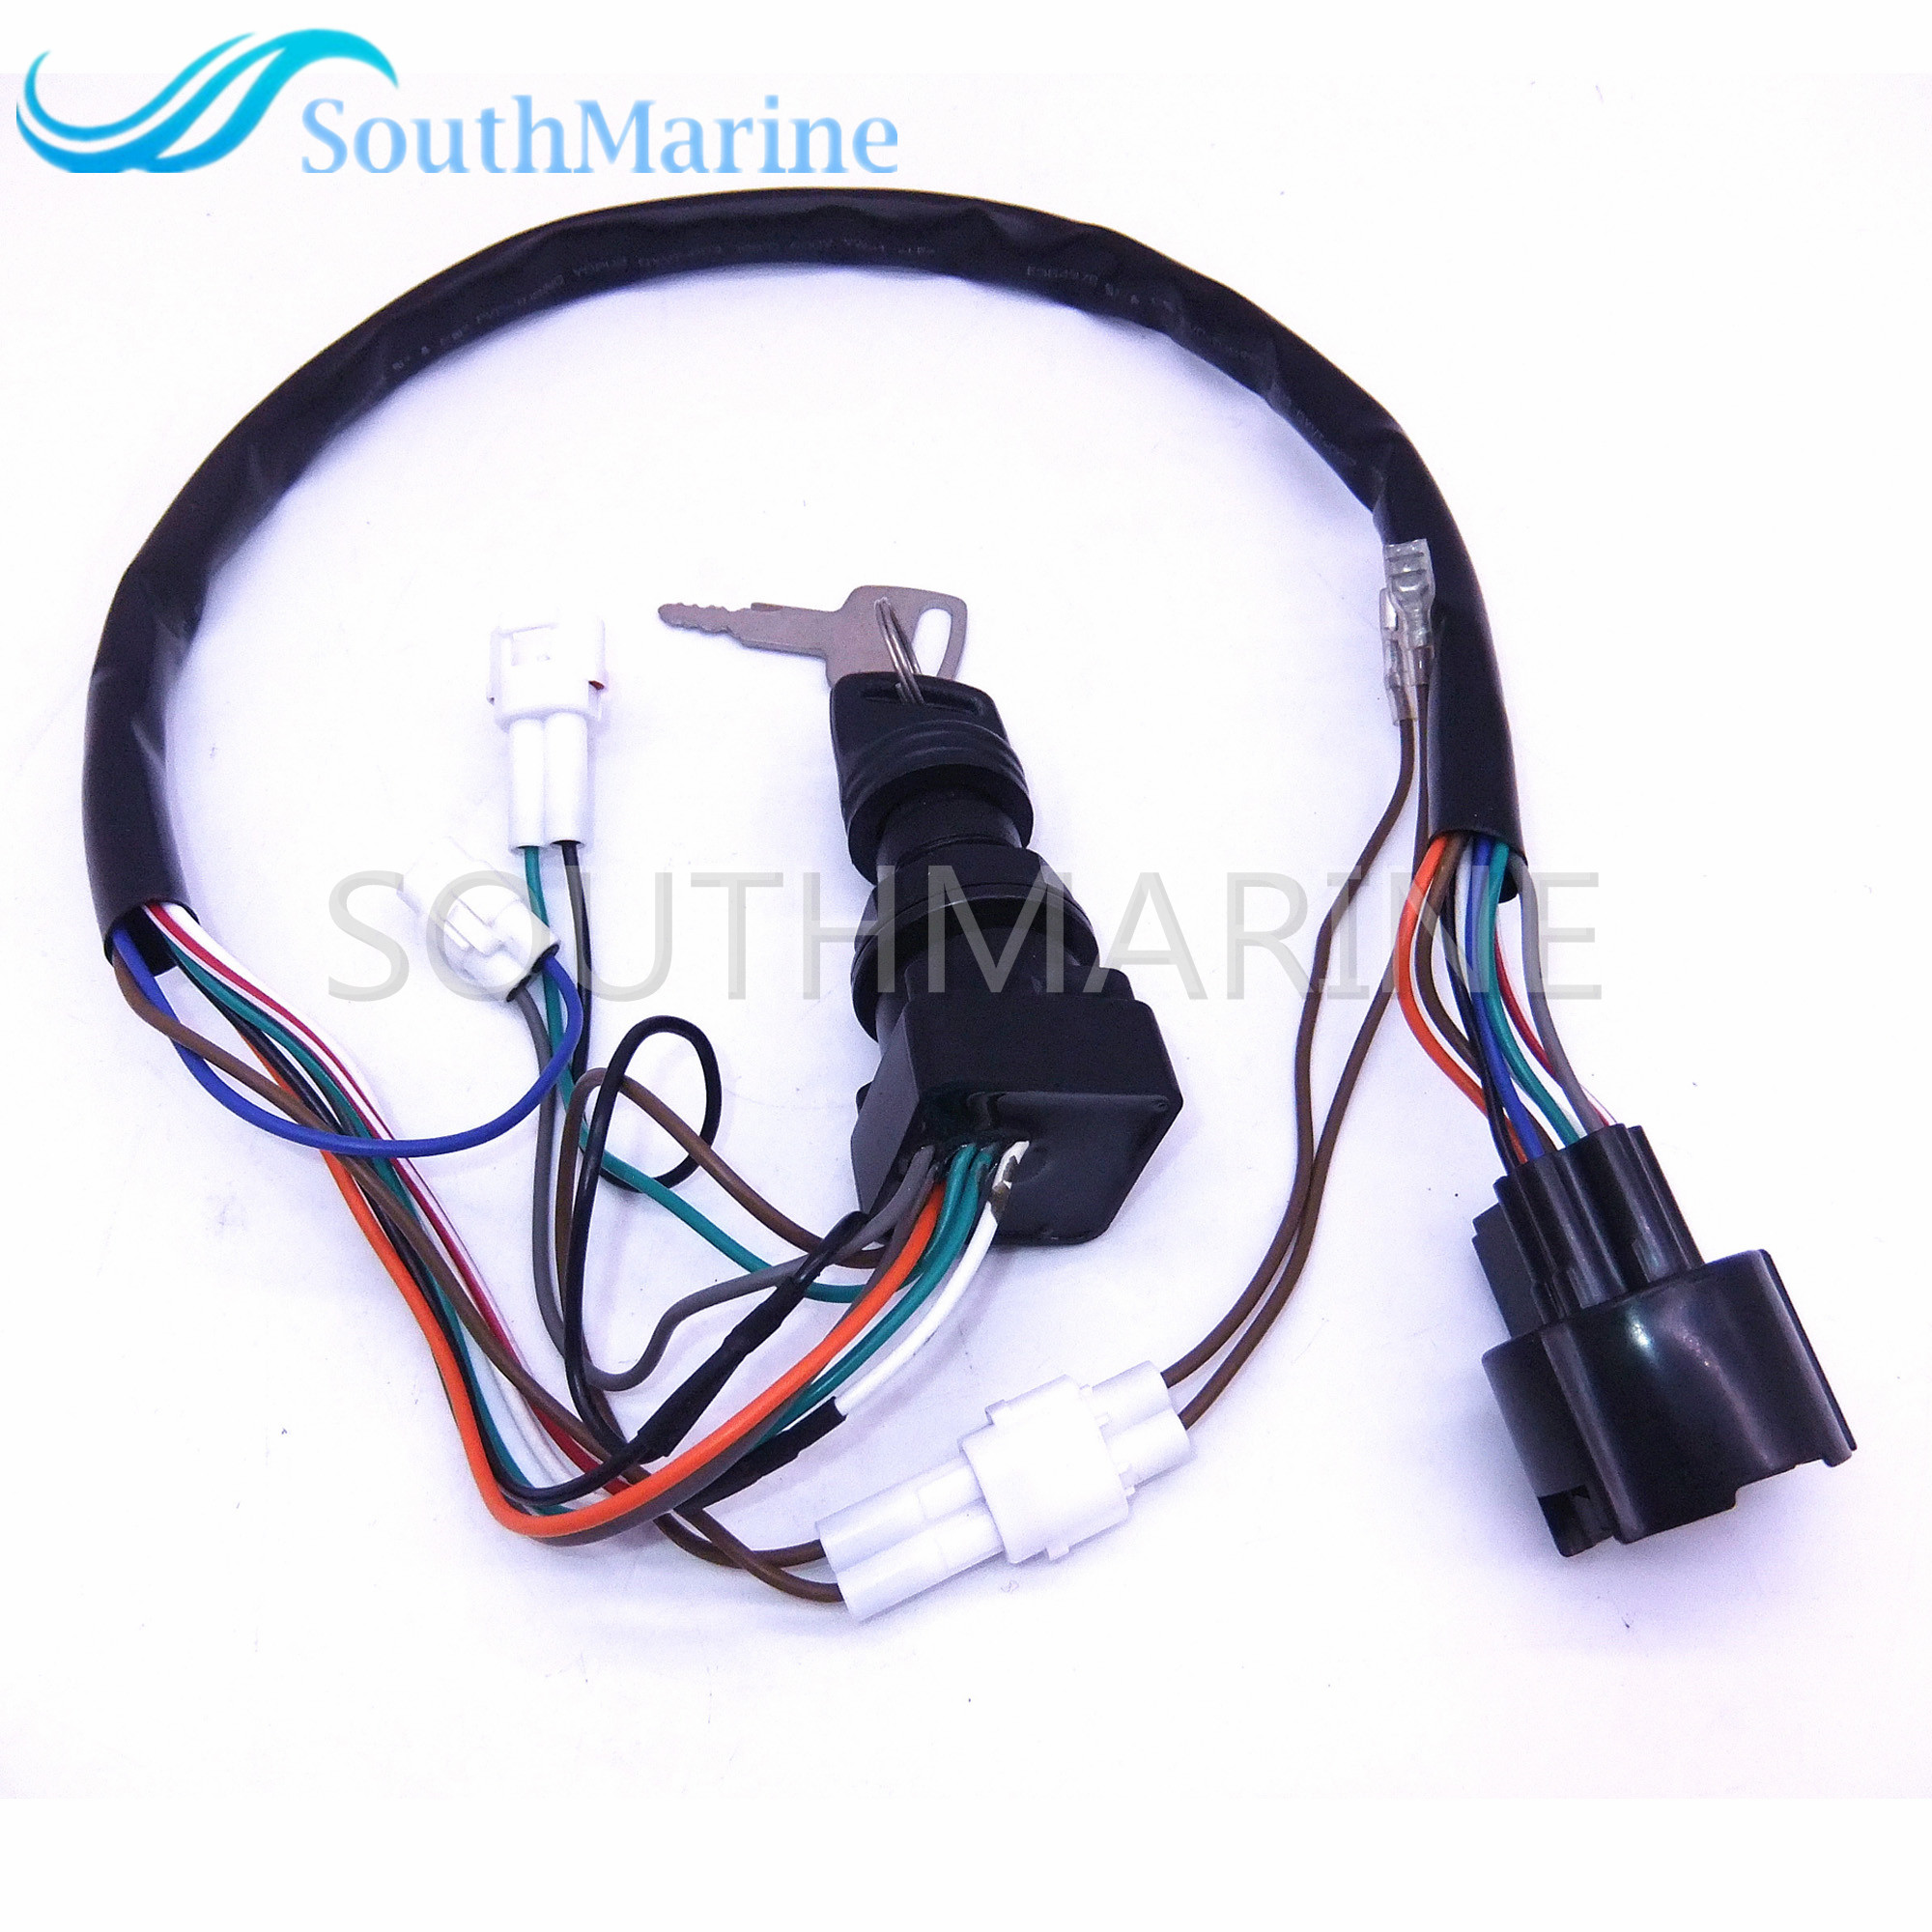 hight resolution of 37110 93j00 37110 93j01 boat motor ignition switch assembly for suzuki outboard motor